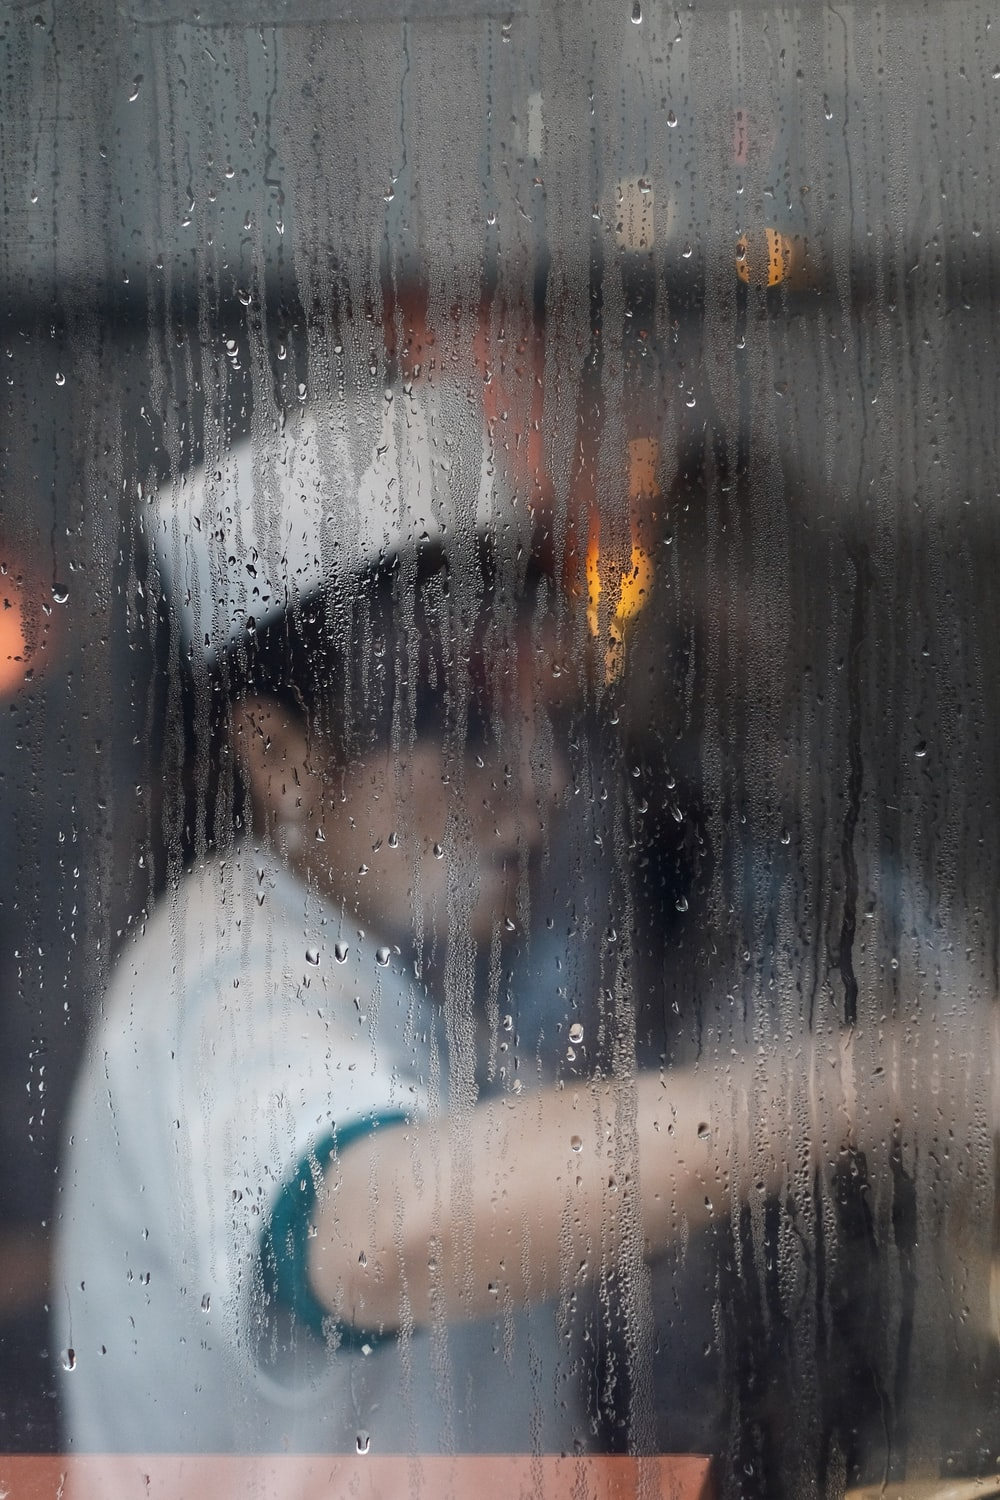 A cook at work seen through a rainy window